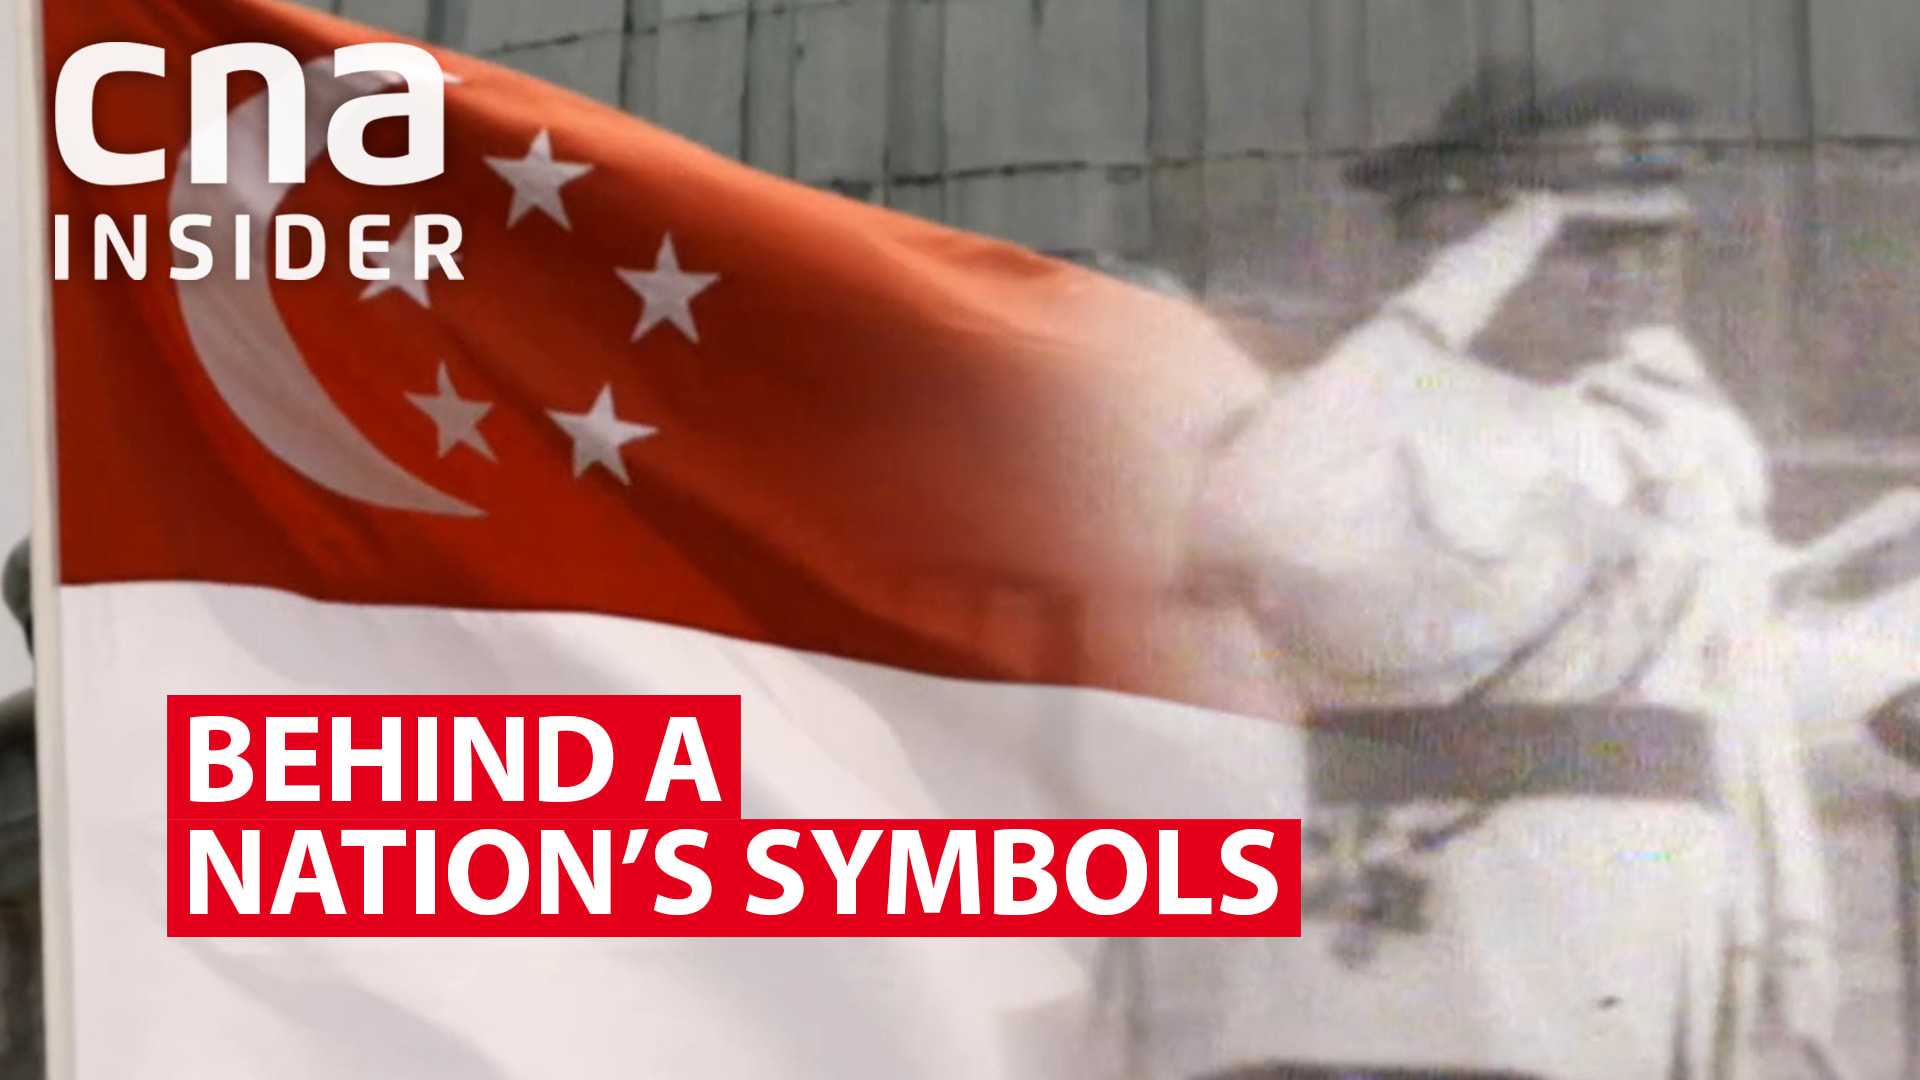 What you didn't know about the Singapore anthem and flag